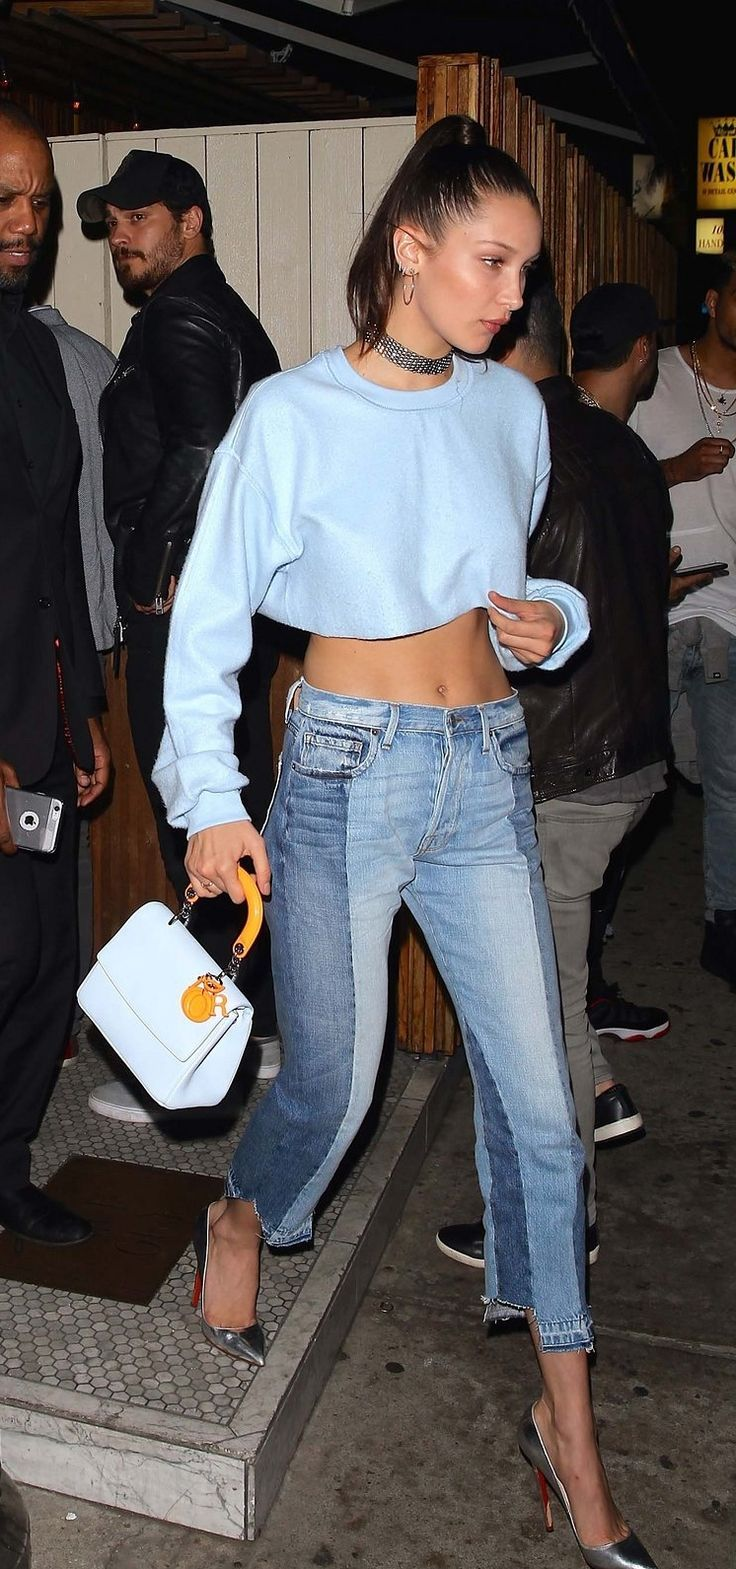 Bella Hadid in Danielle Guizio top, Fallon necklace, Dior bag, Frame Denim jeans, and Christian Louboutin shoes.